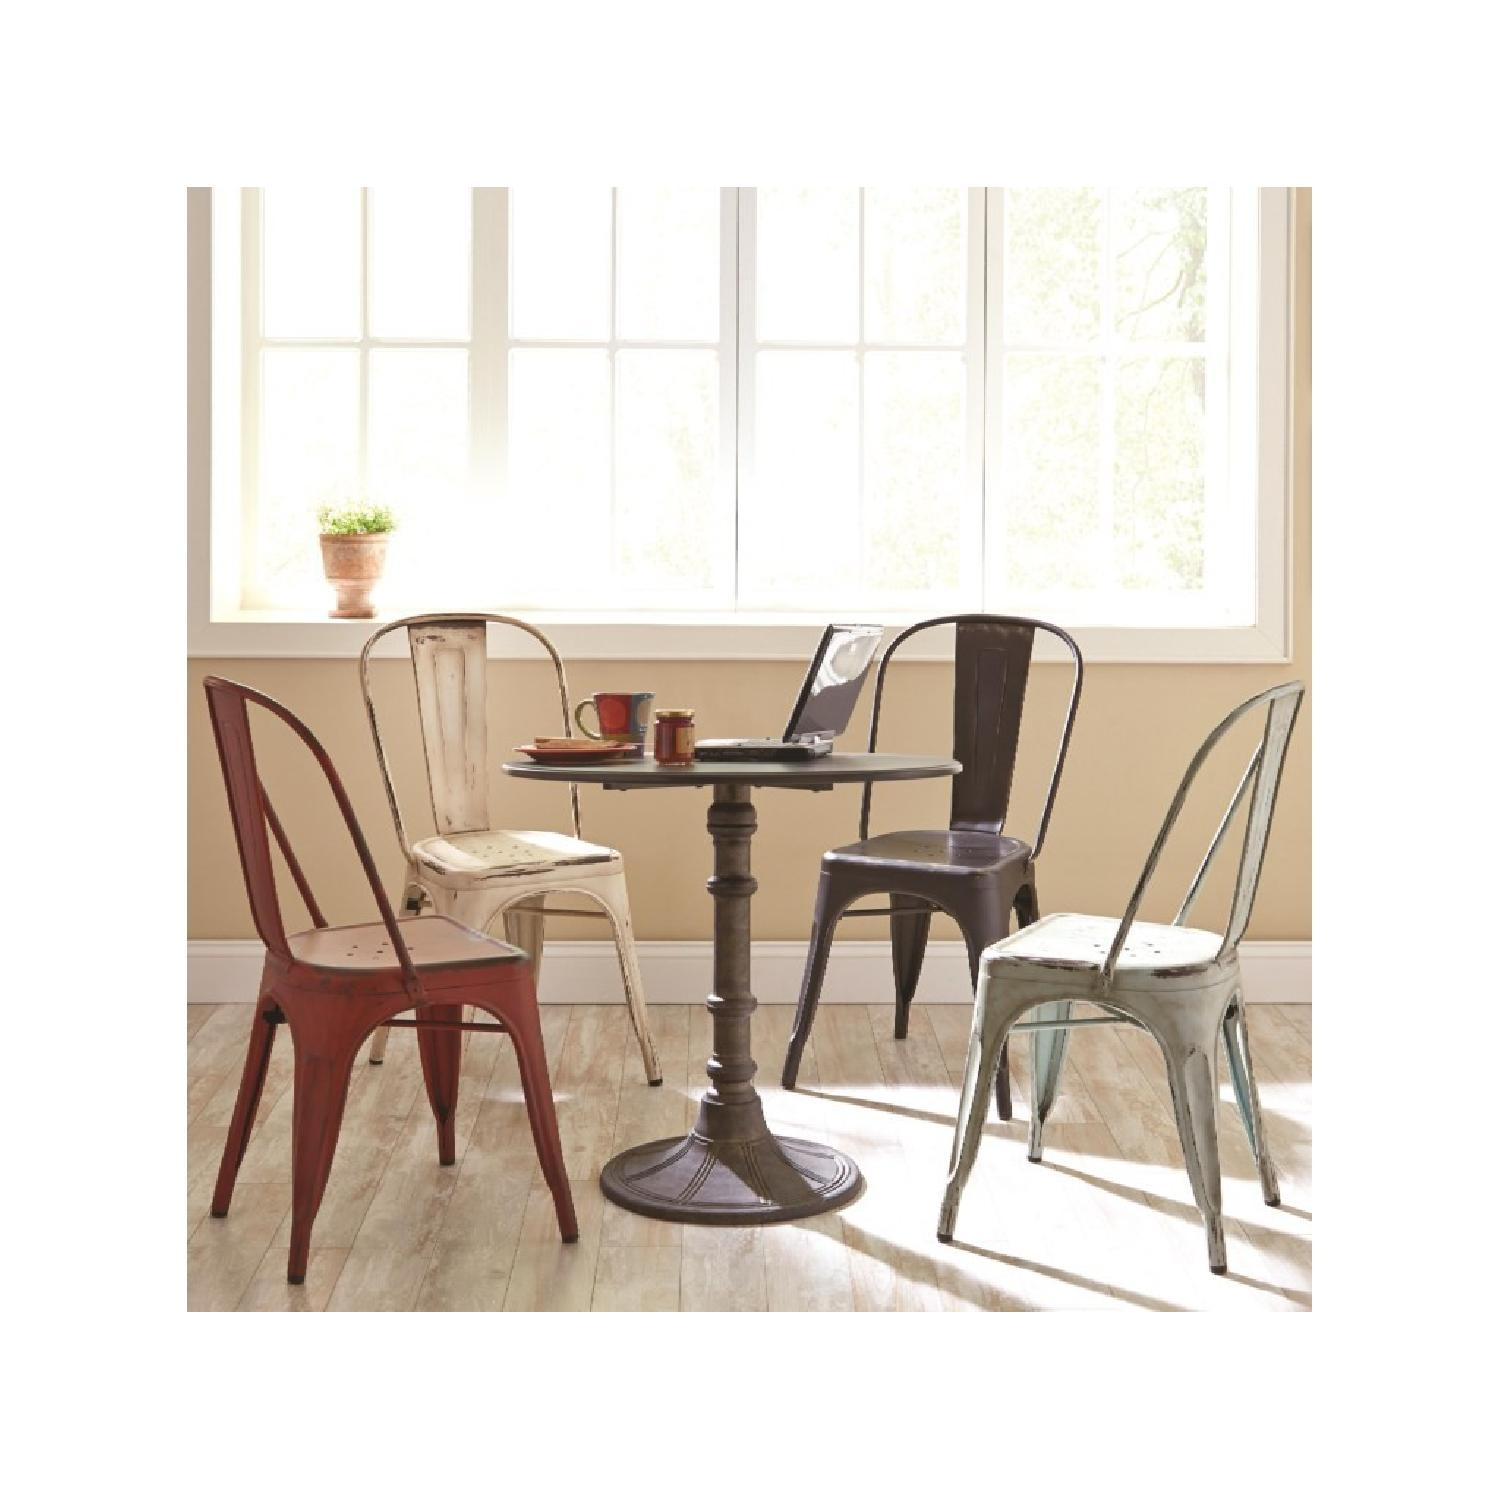 ... Rustic Galvanized Metal Dining Chairs In Antique White 1